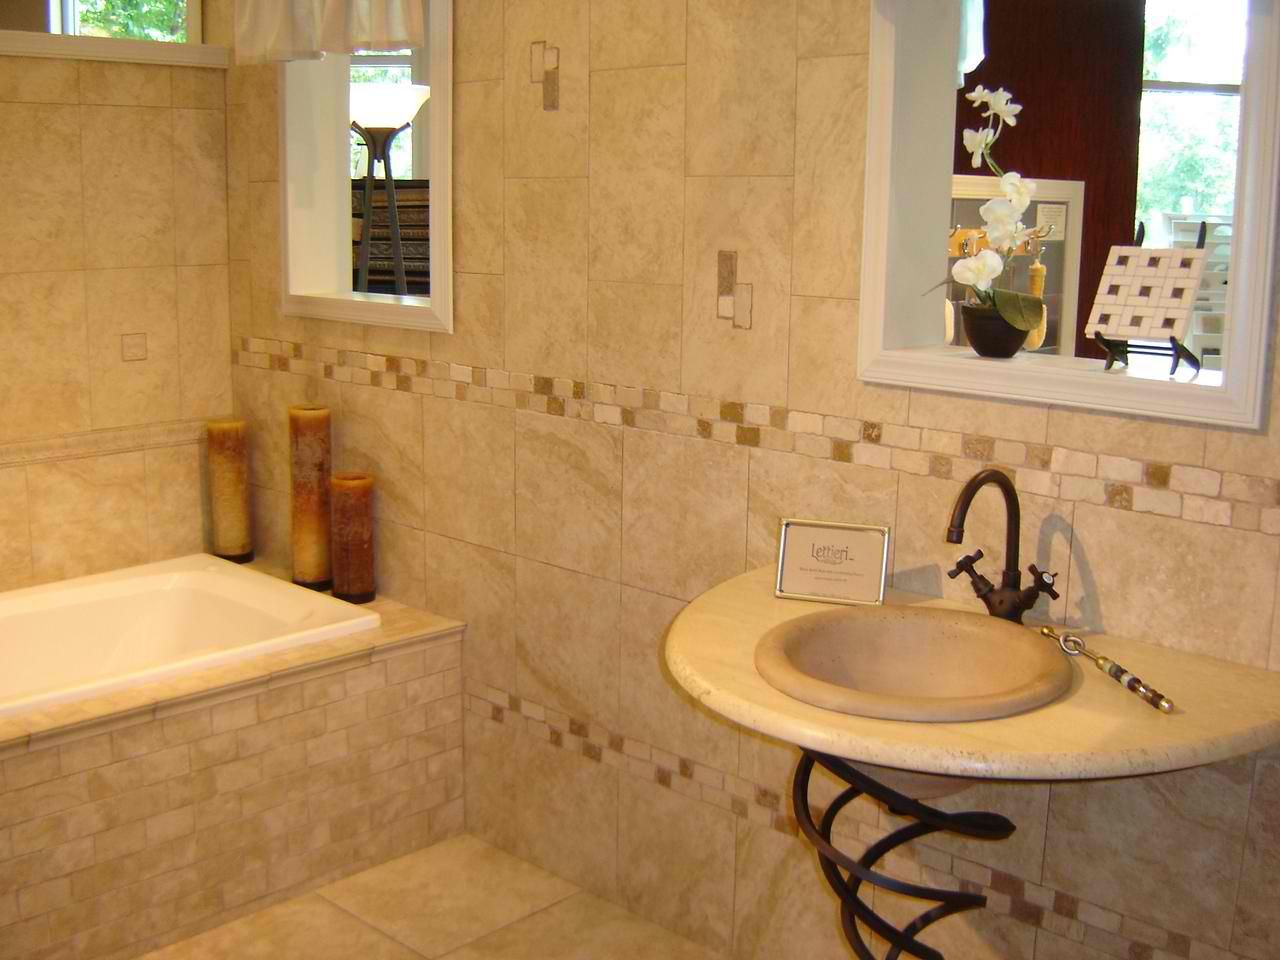 Tips on how to refinish bathroom tiles interior for Modern bathroom tile designs